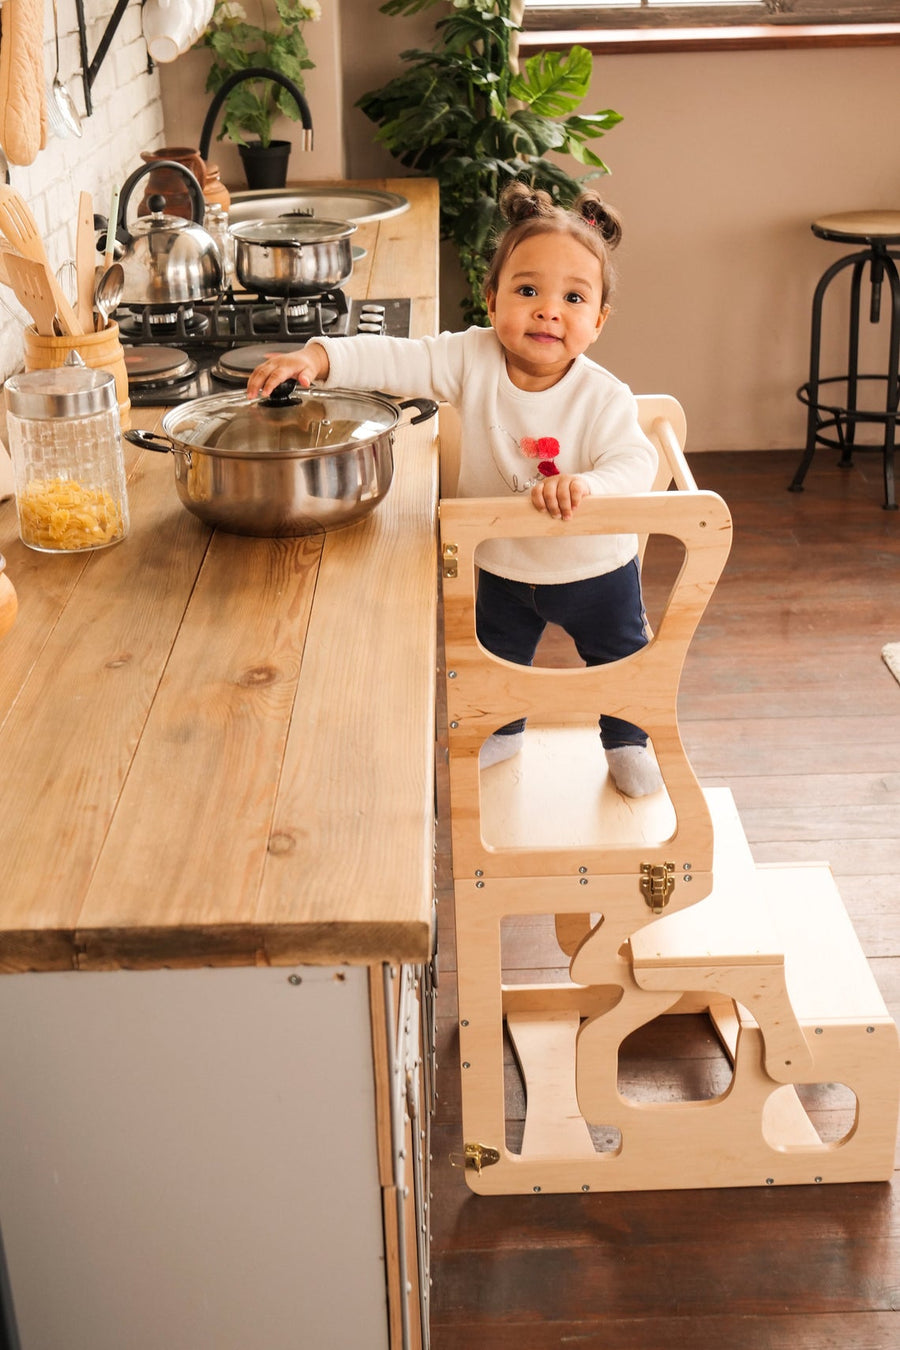 a child in the kitchen. The child stands on a high chair and reaches the countertop